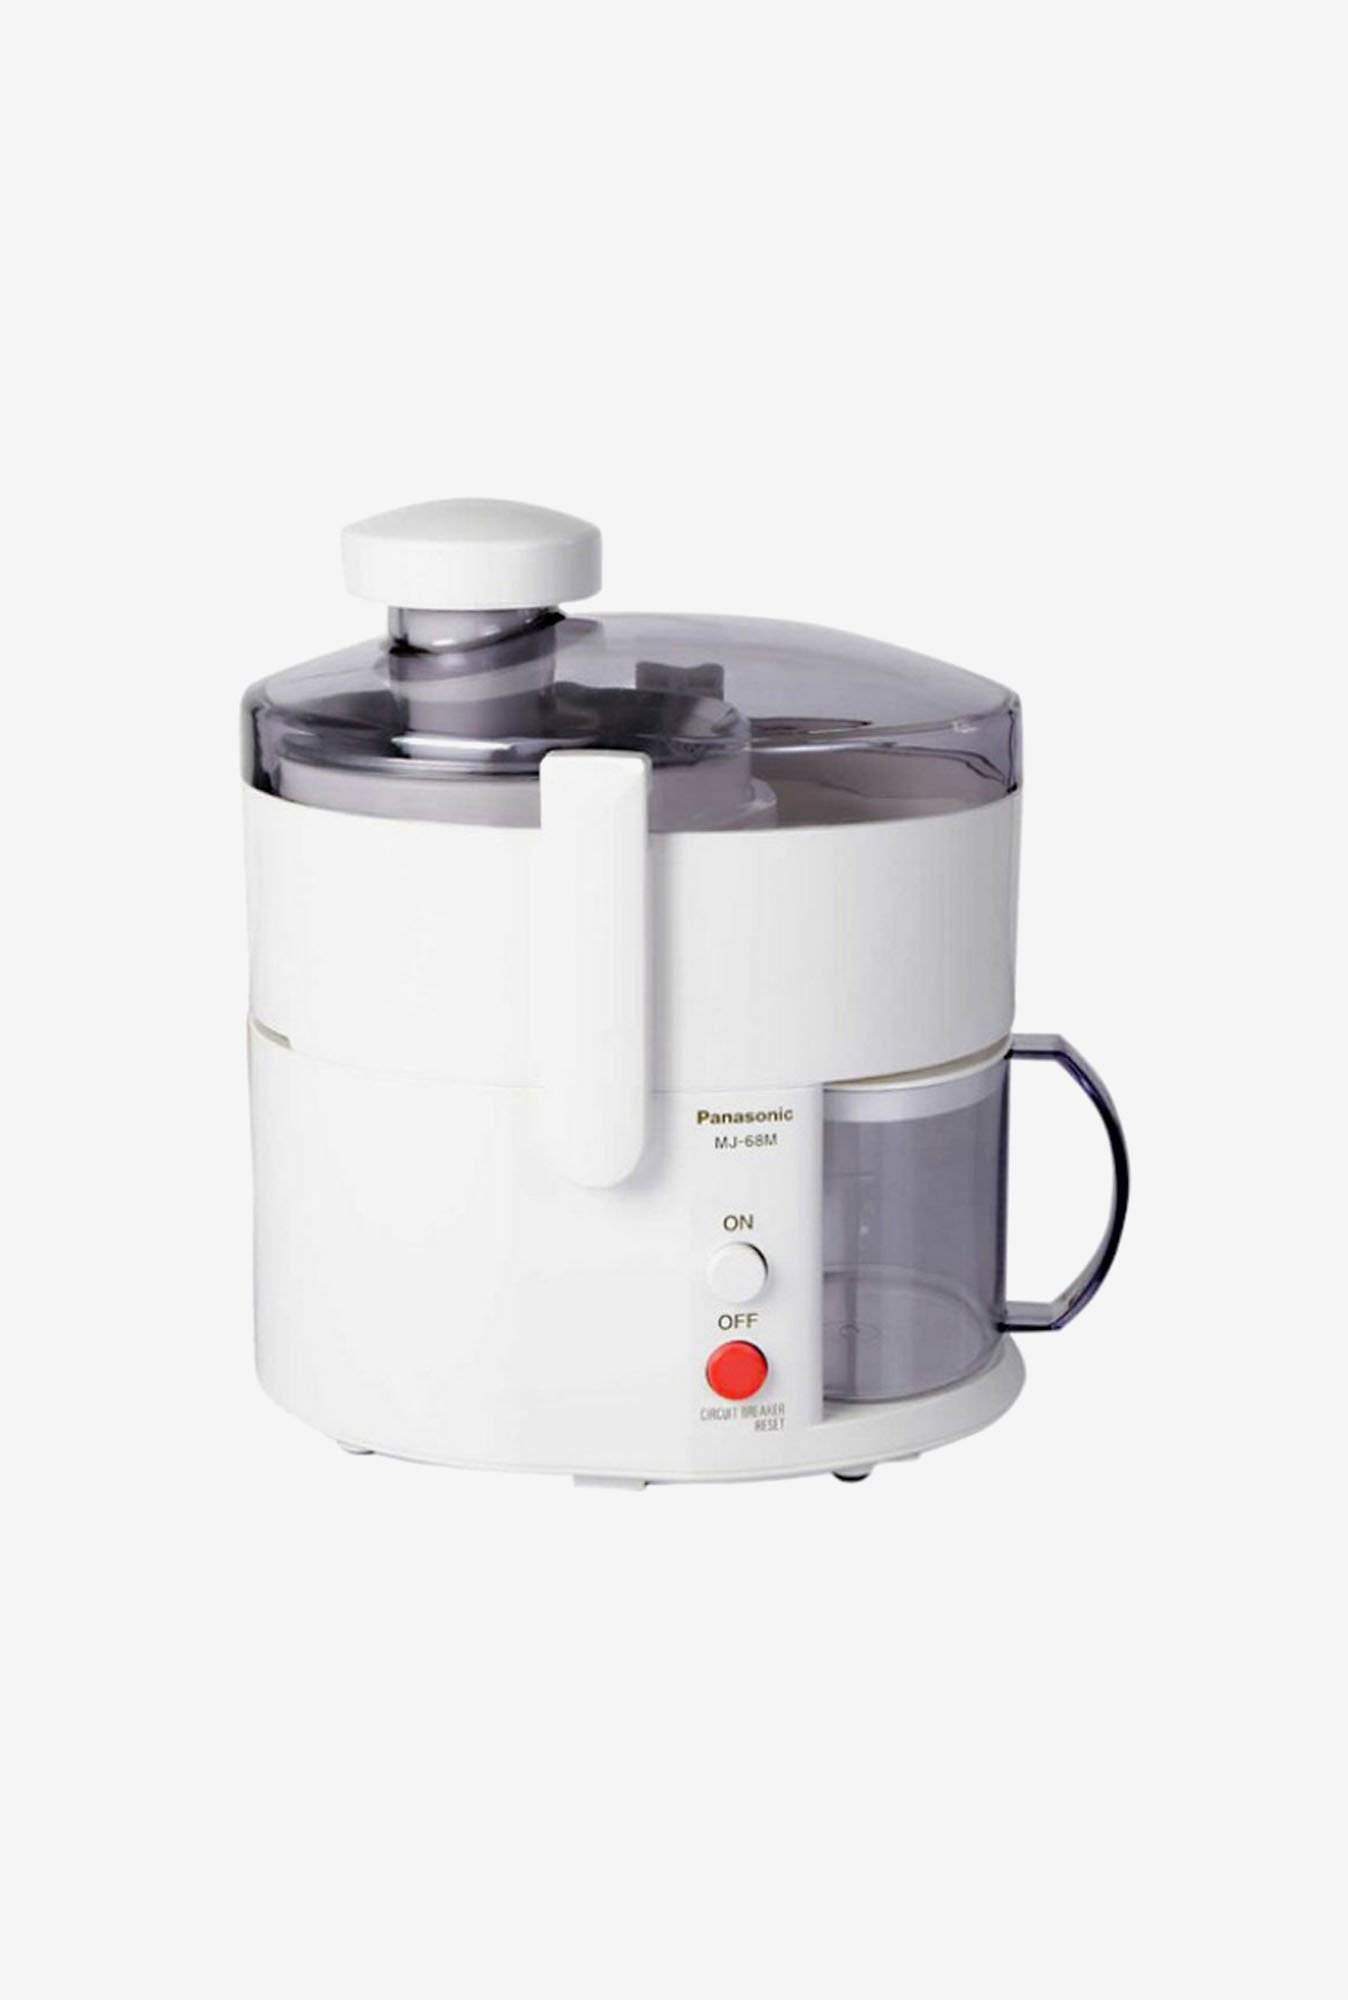 Panasonic MJ-68M Centrifugal Juicer with Stainless Steel Blades White